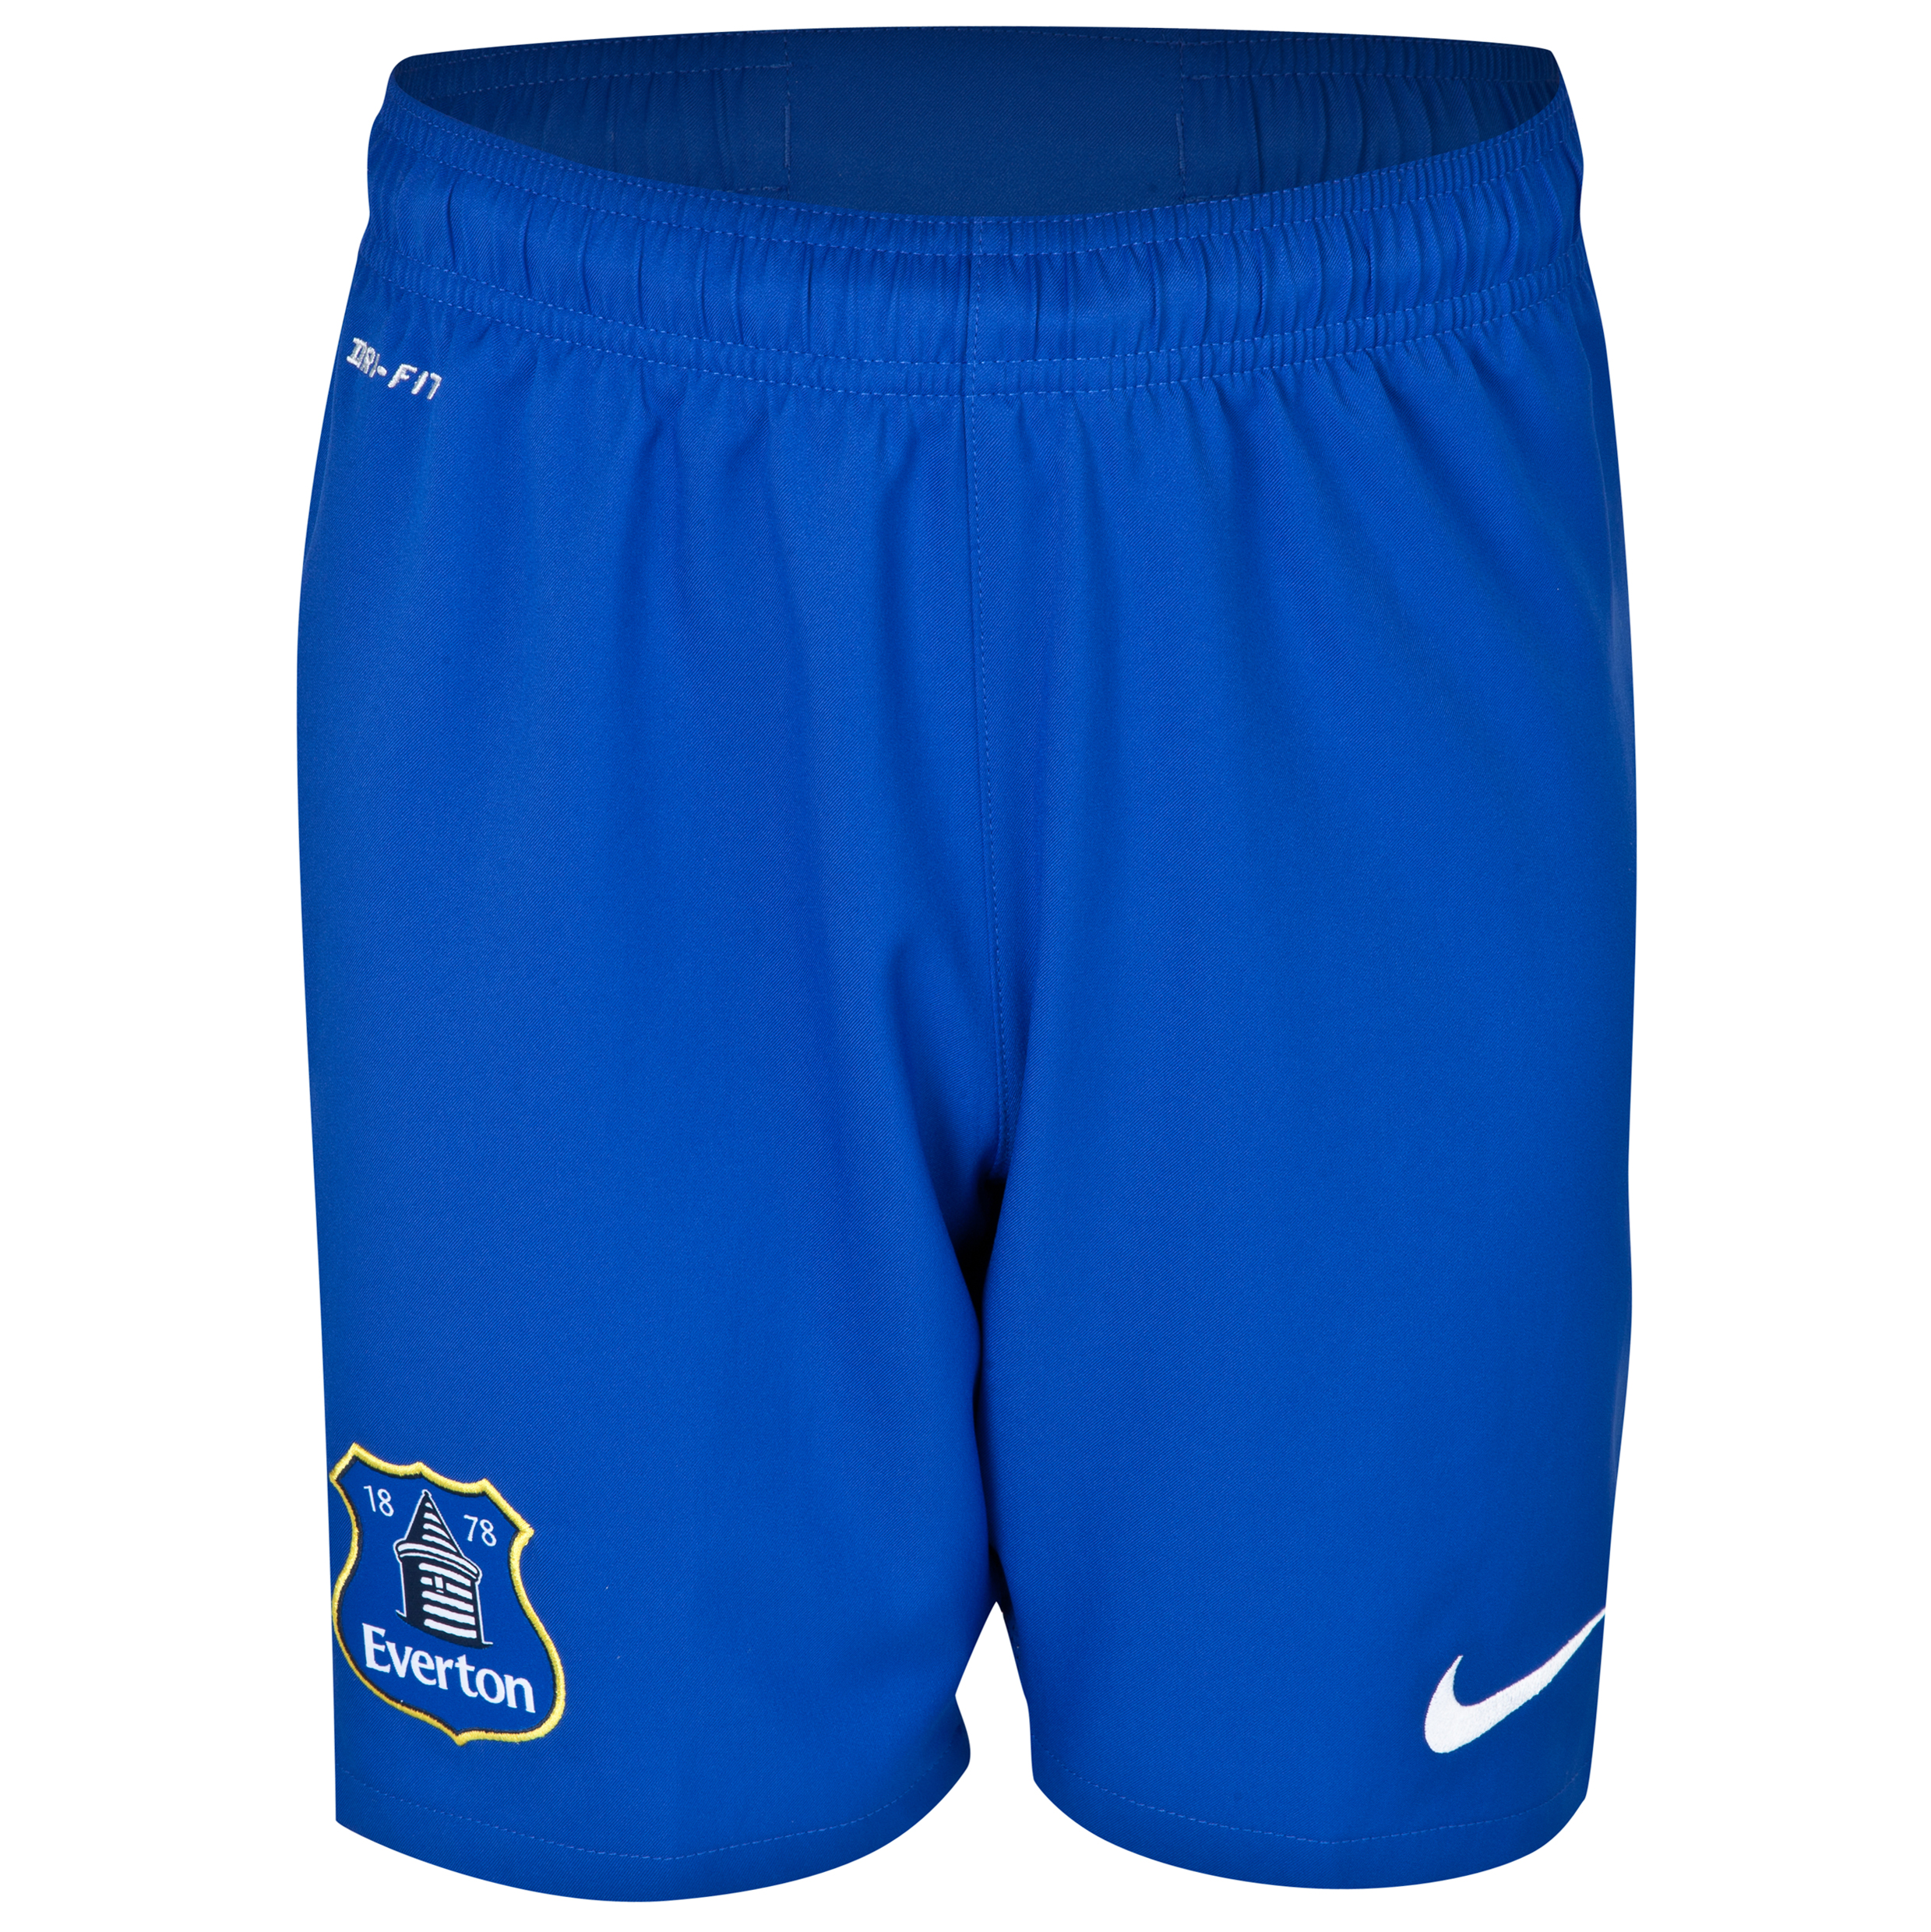 Everton Away Short 2013/14 - Junior Blue